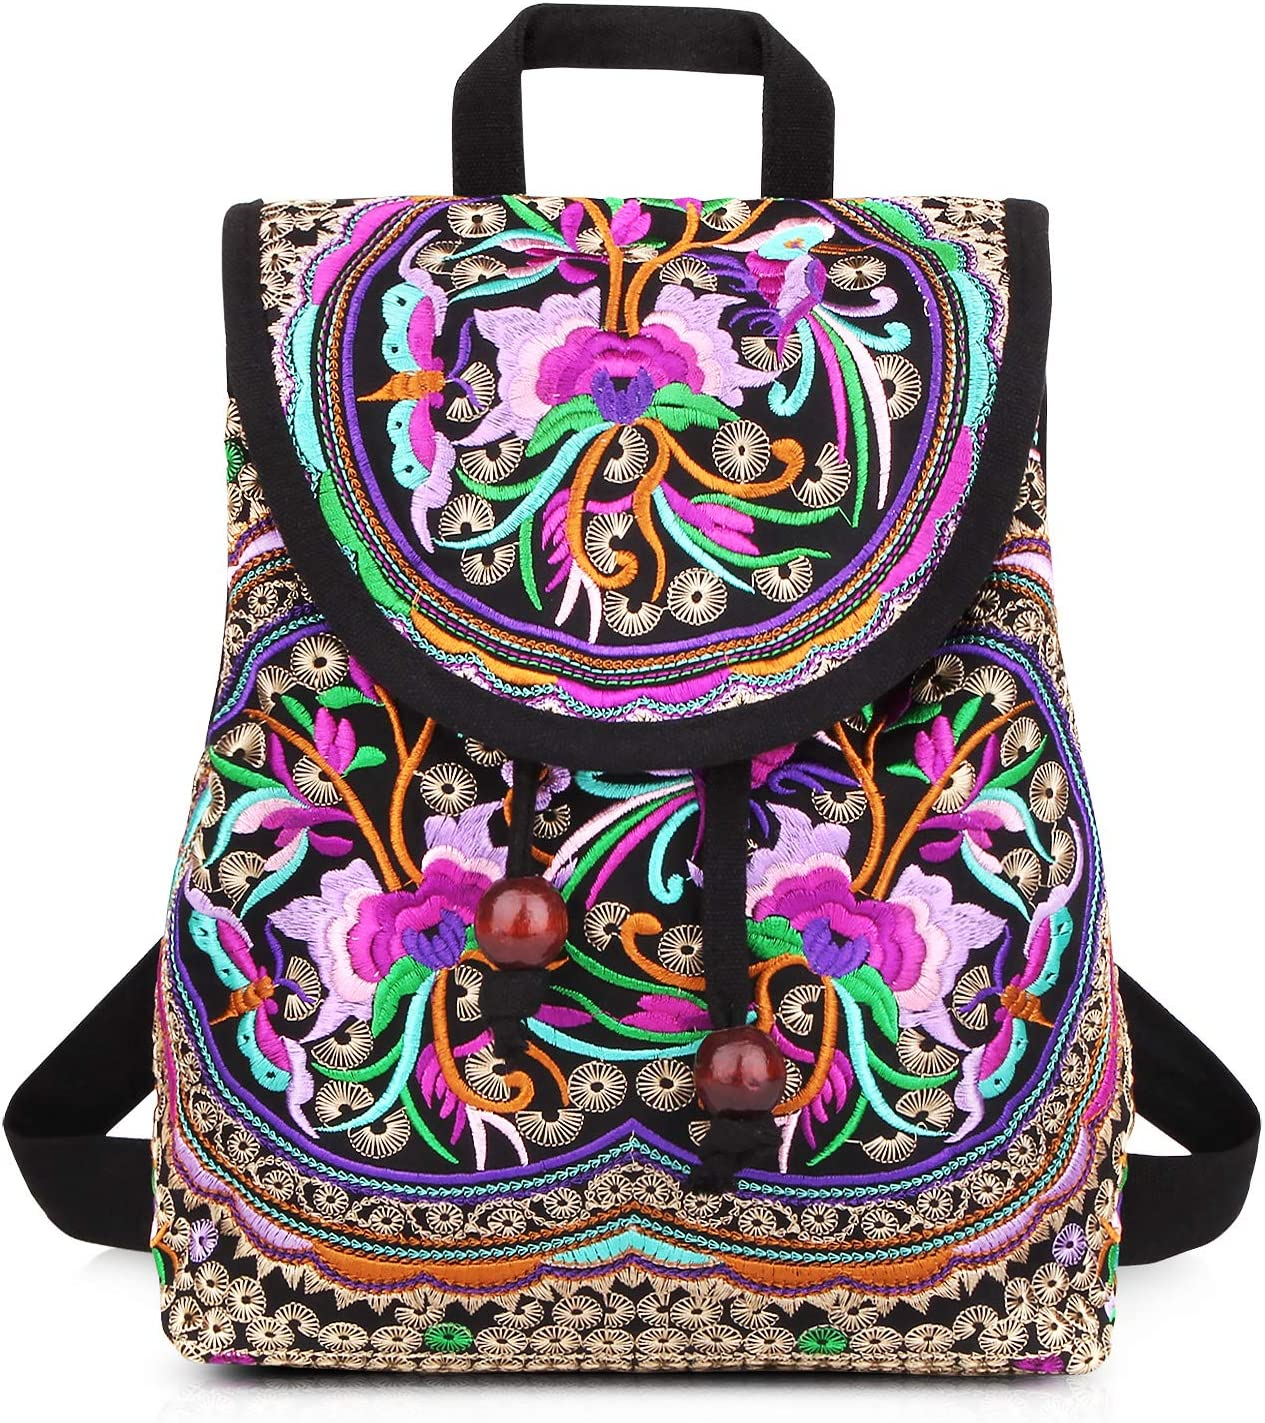 Handmade Embroidered Backpack for Women Max 56% OFF Shoulder Columbus Mall Mazexy Boho Ba